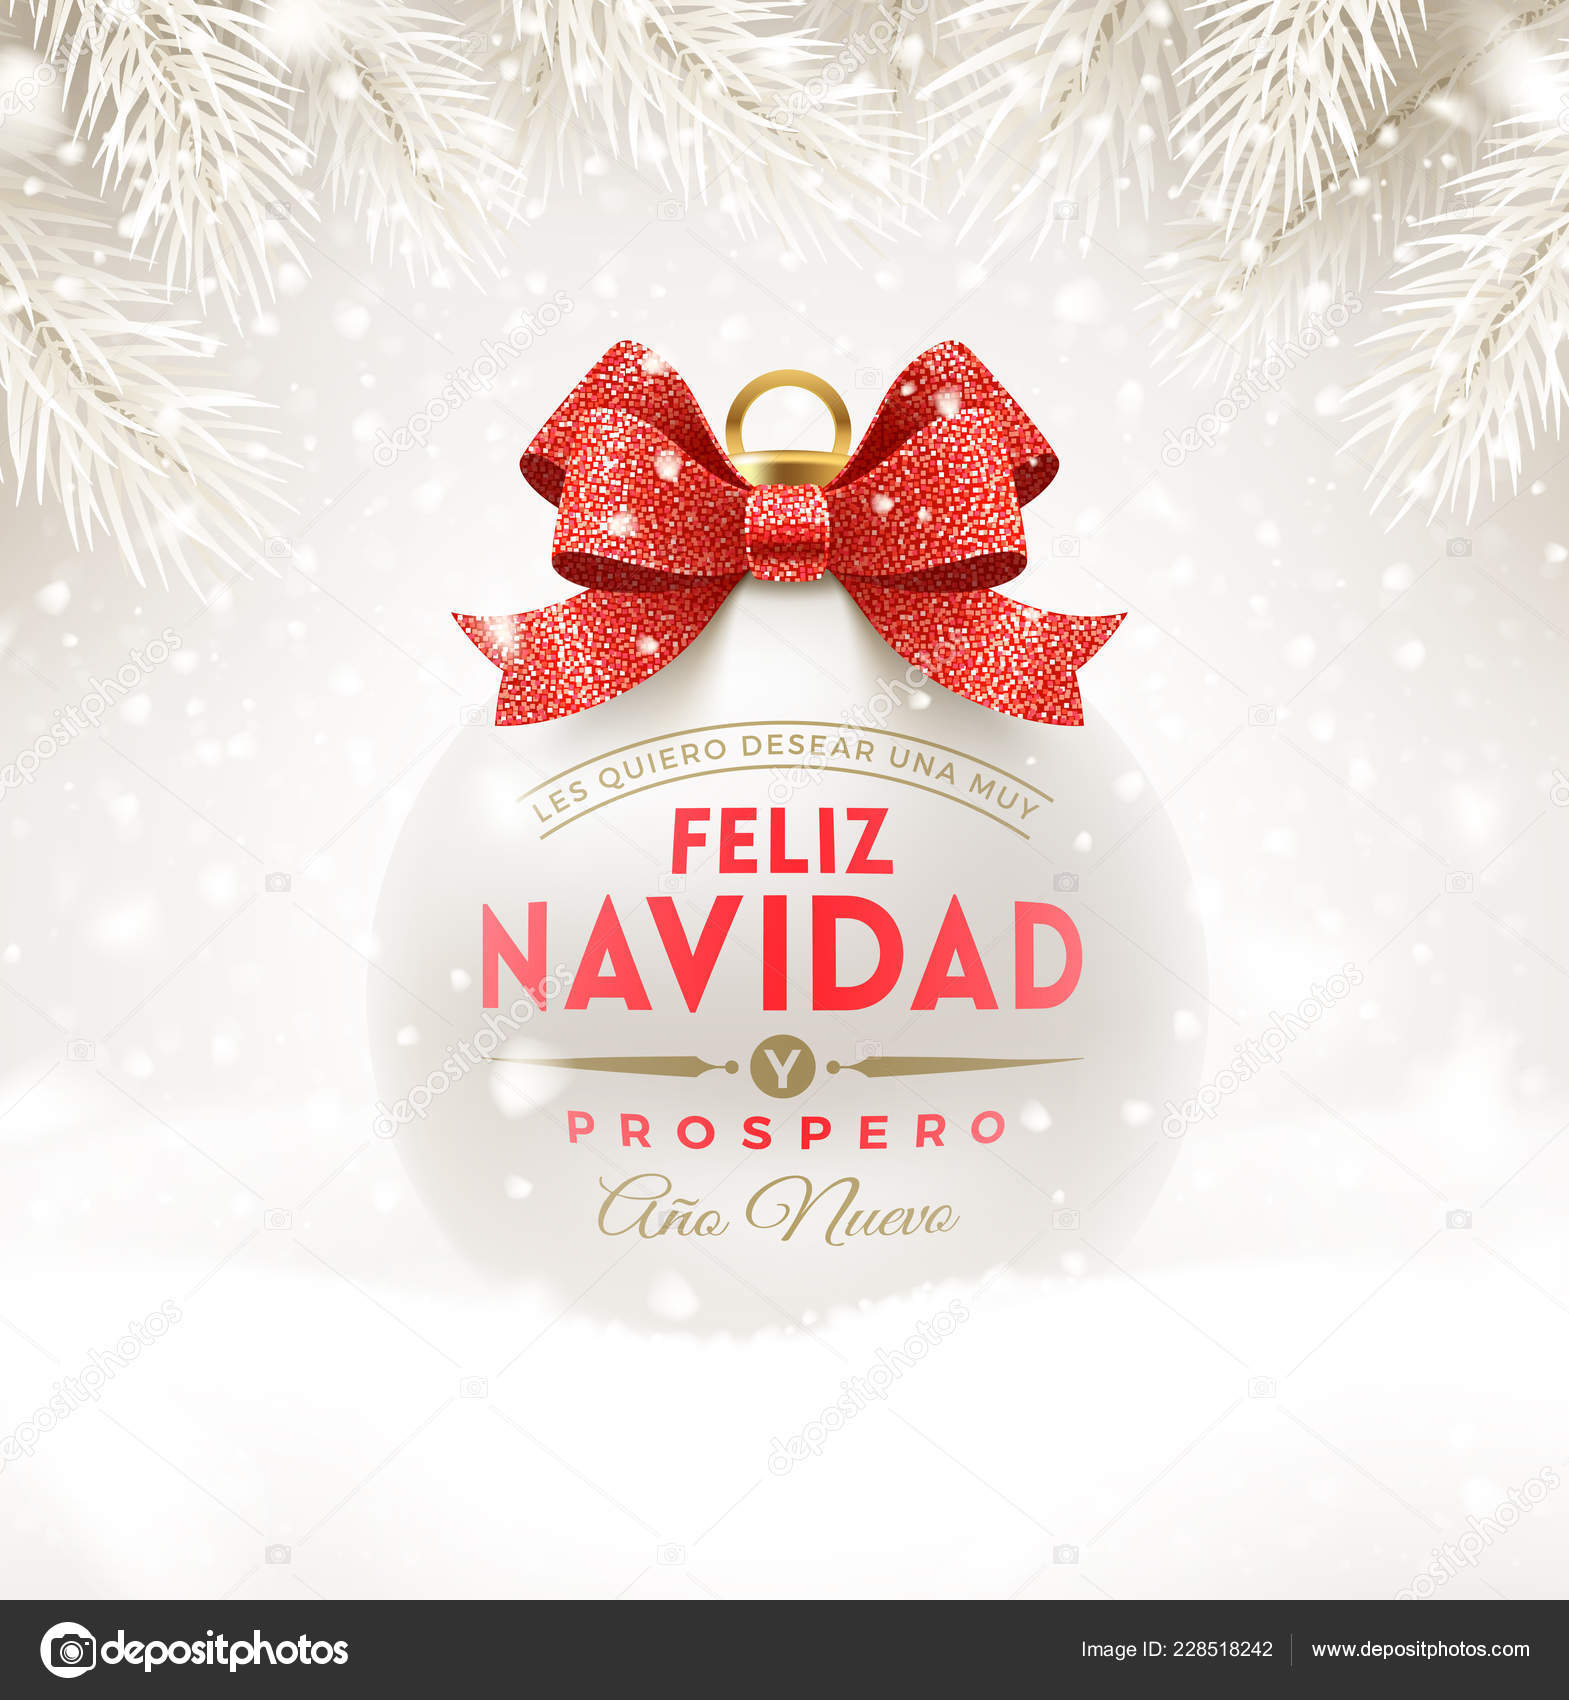 Christmas Spanish.Merry Christmas Greetings In Spanish Feliz Navidad